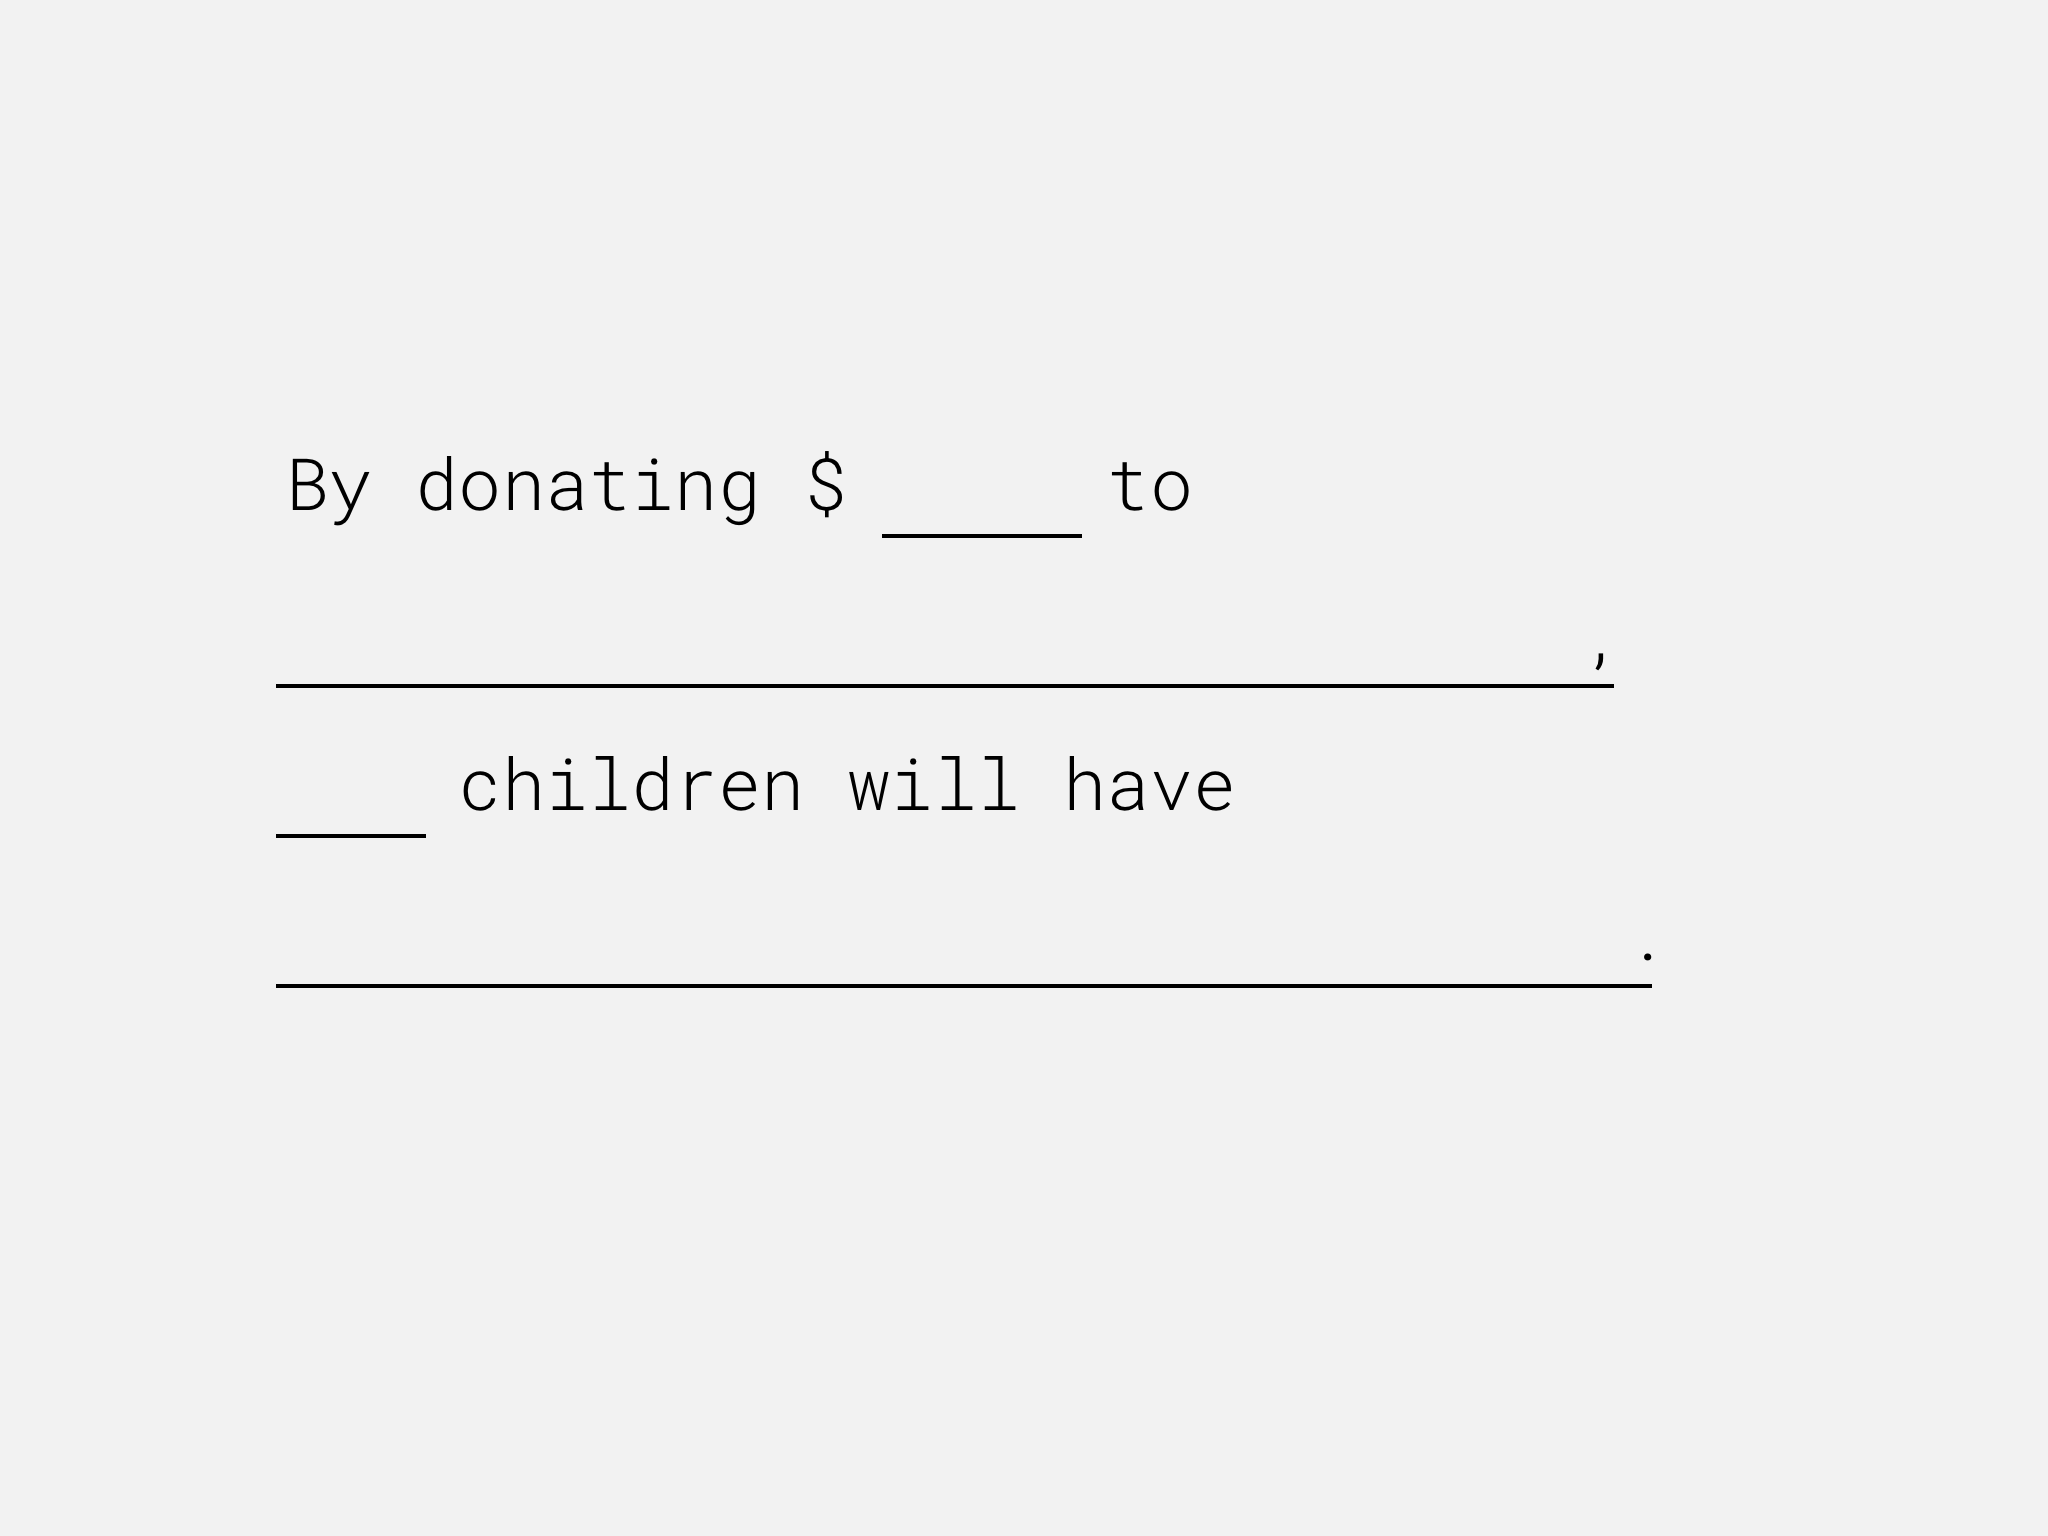 poverty_donation-criteria-1.png